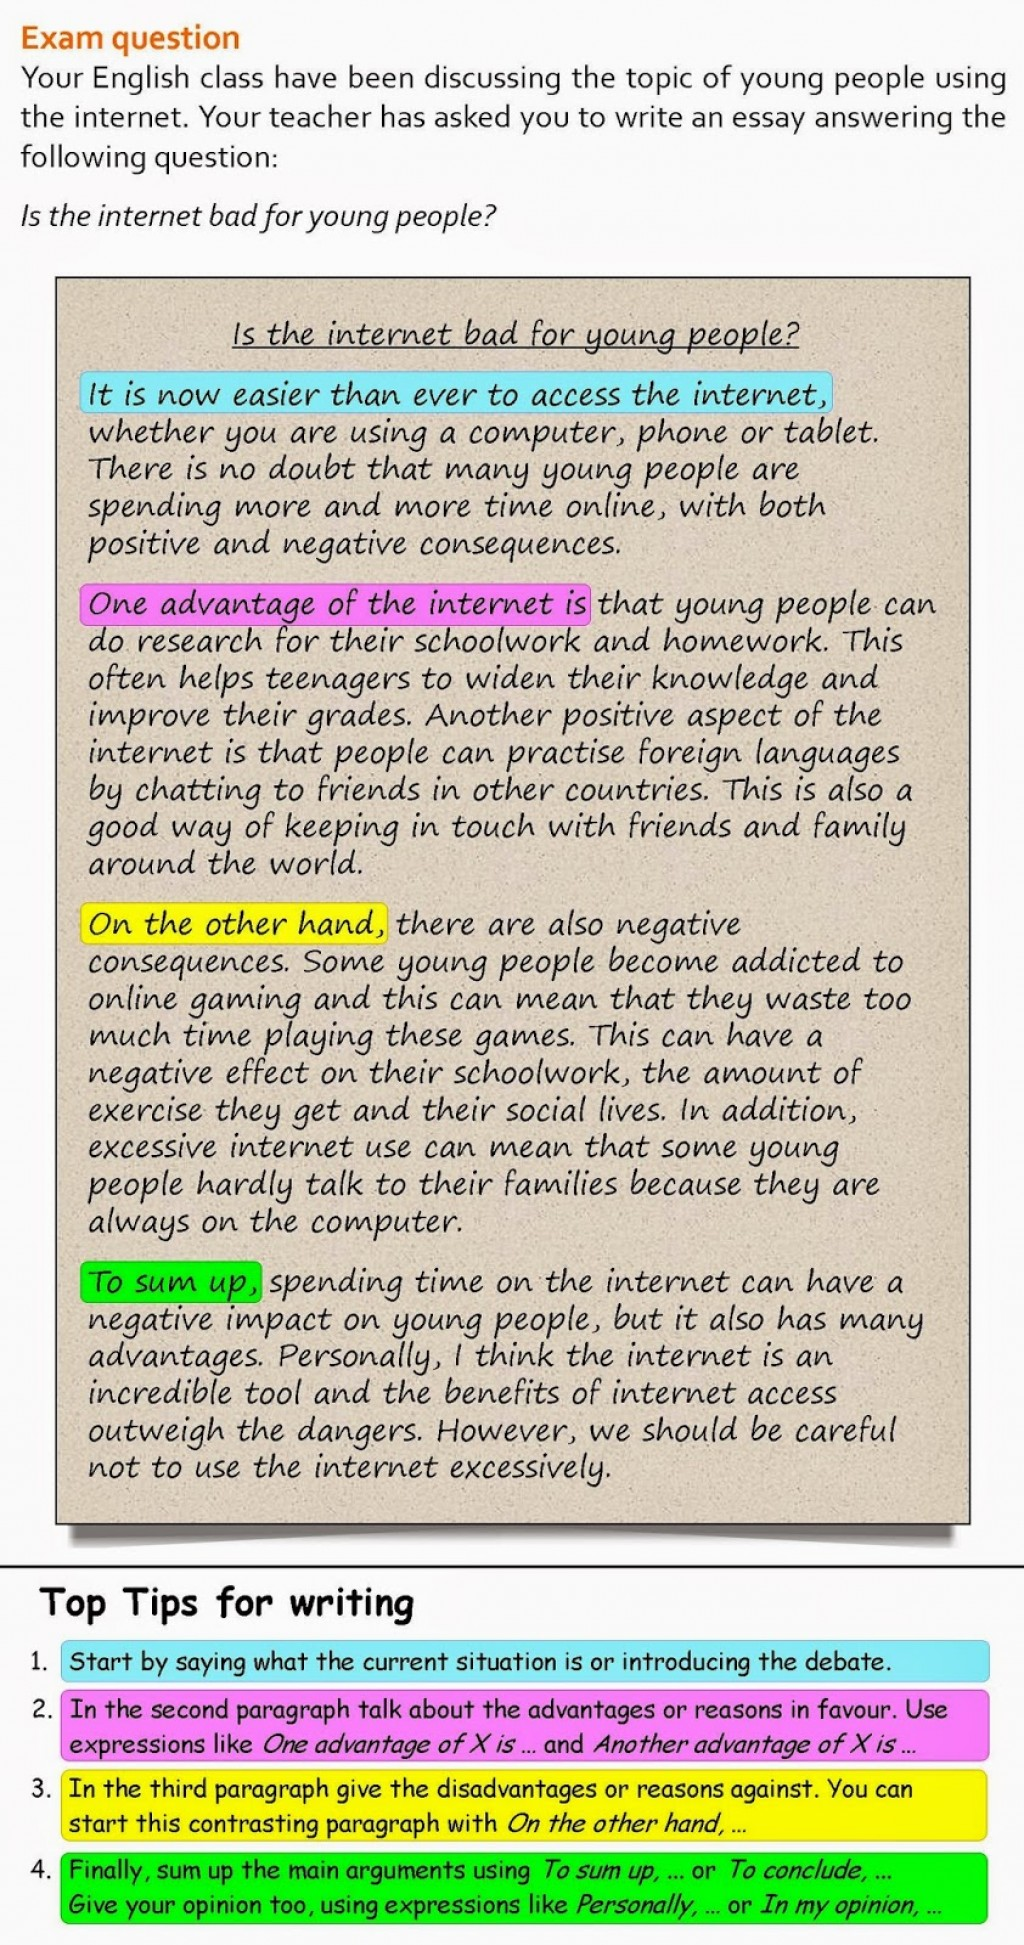 010 Opinion Essay B2w A For And Against 0 Magnificent Prompts 6th Grade Examples 3rd Large